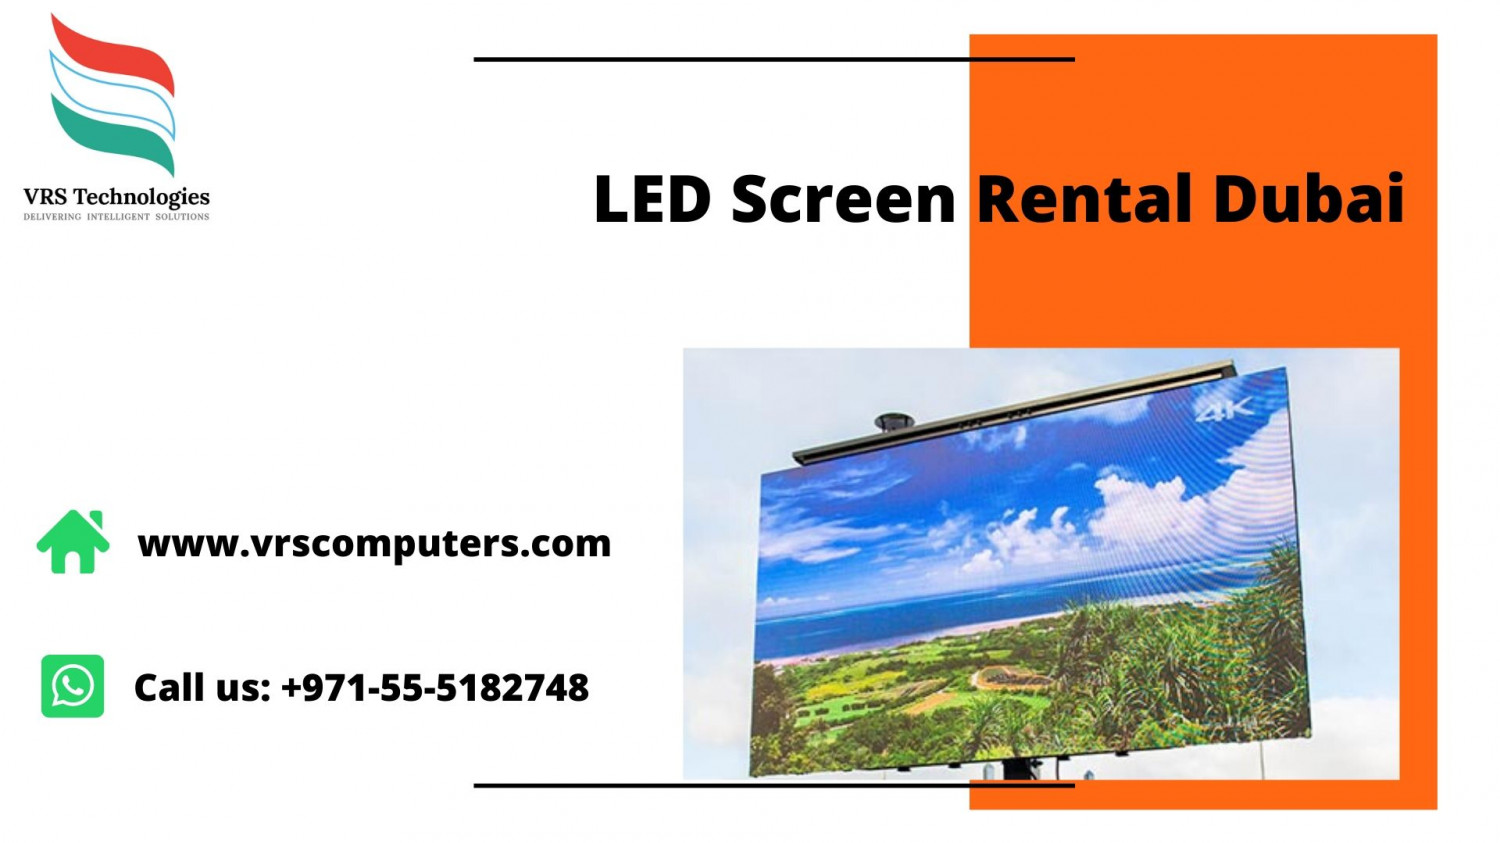 LED Screen Rental Dubai Infographic